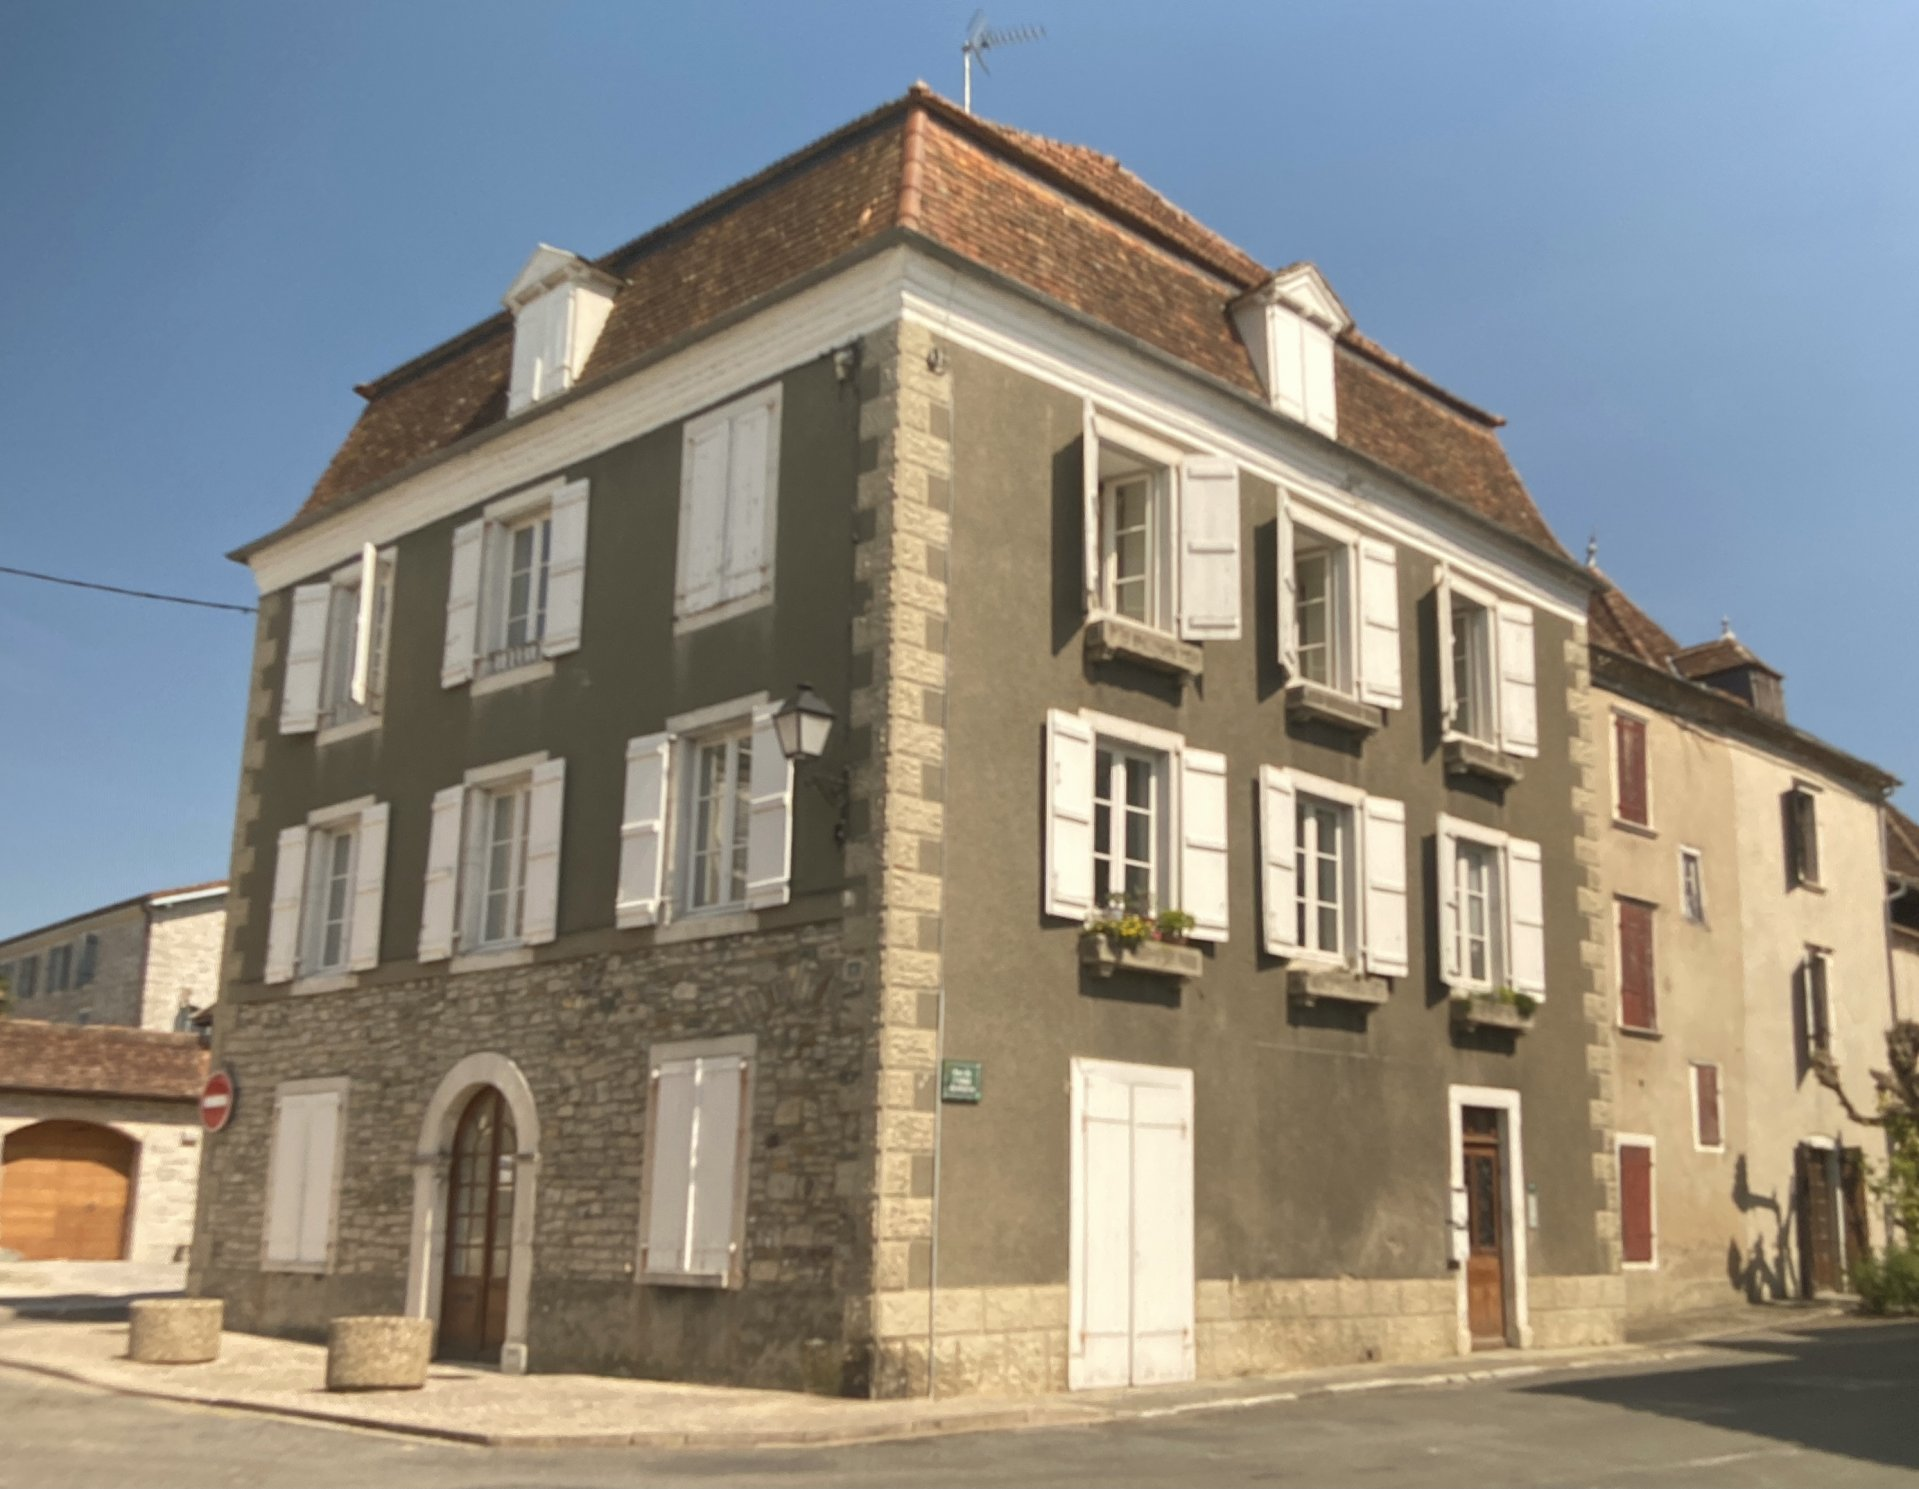 An interesting investment project in the centre of Sauveterre de Béarn